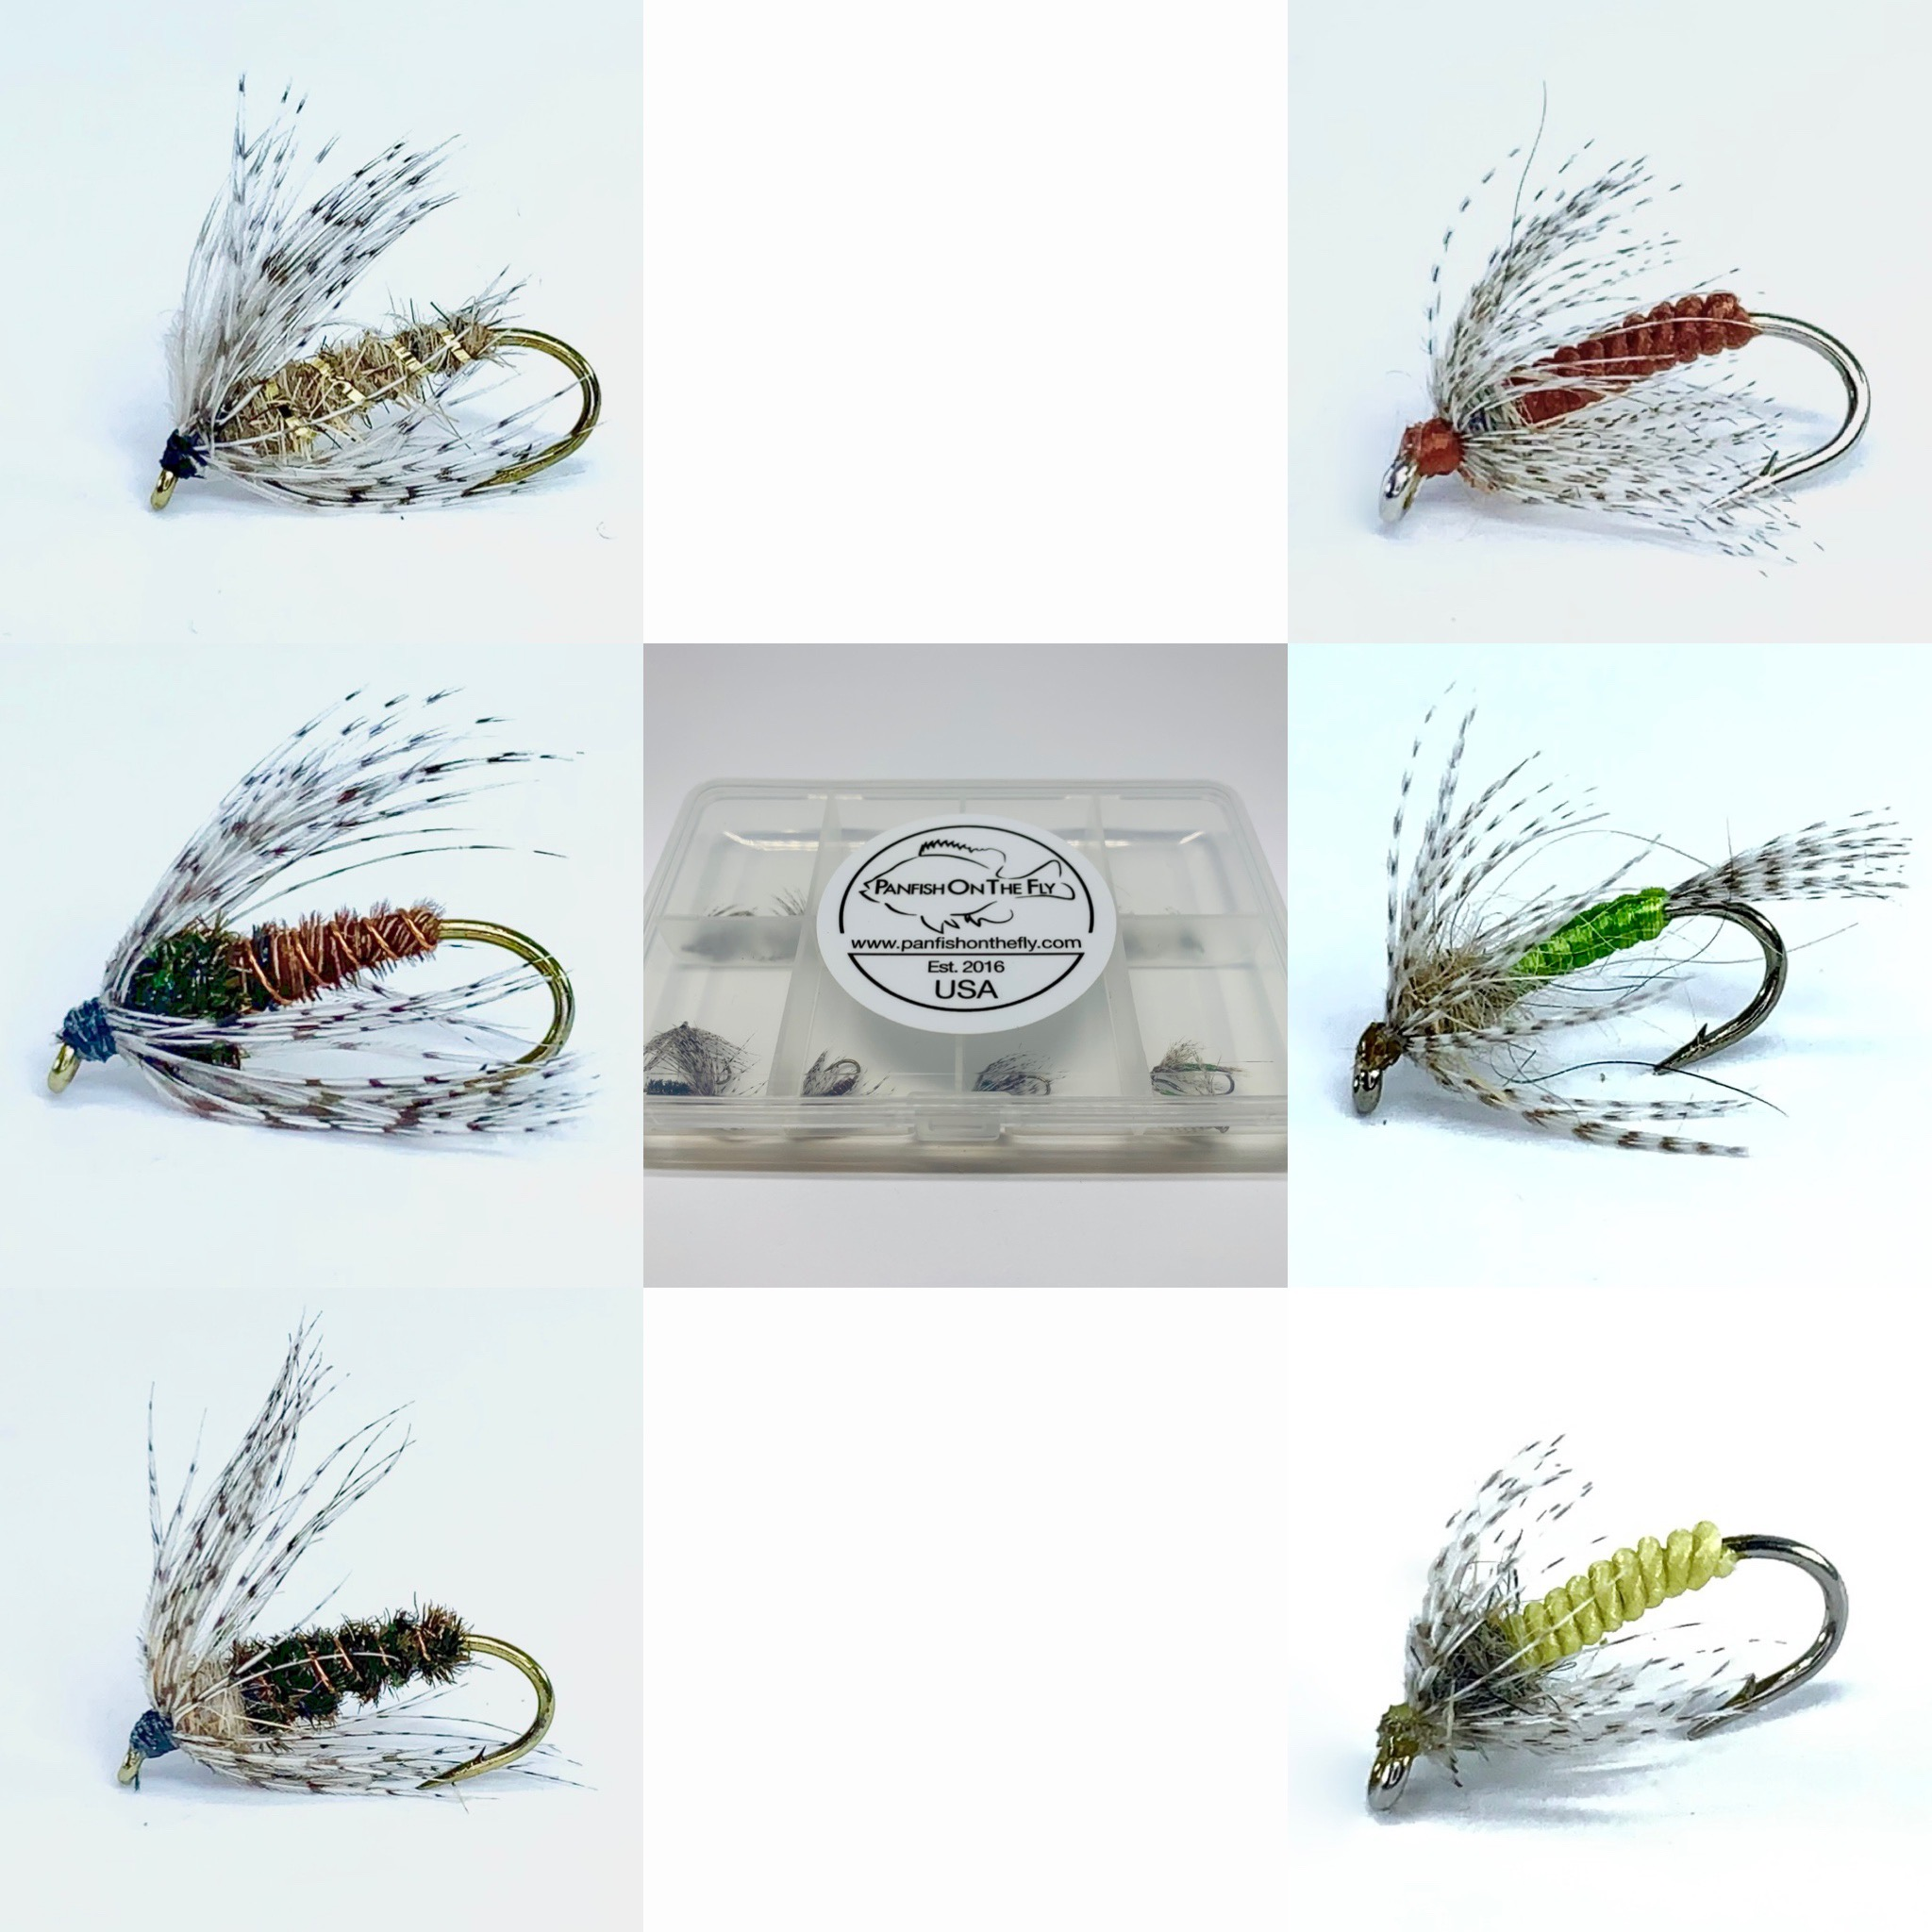 Our Top Soft Hackle Patterns -